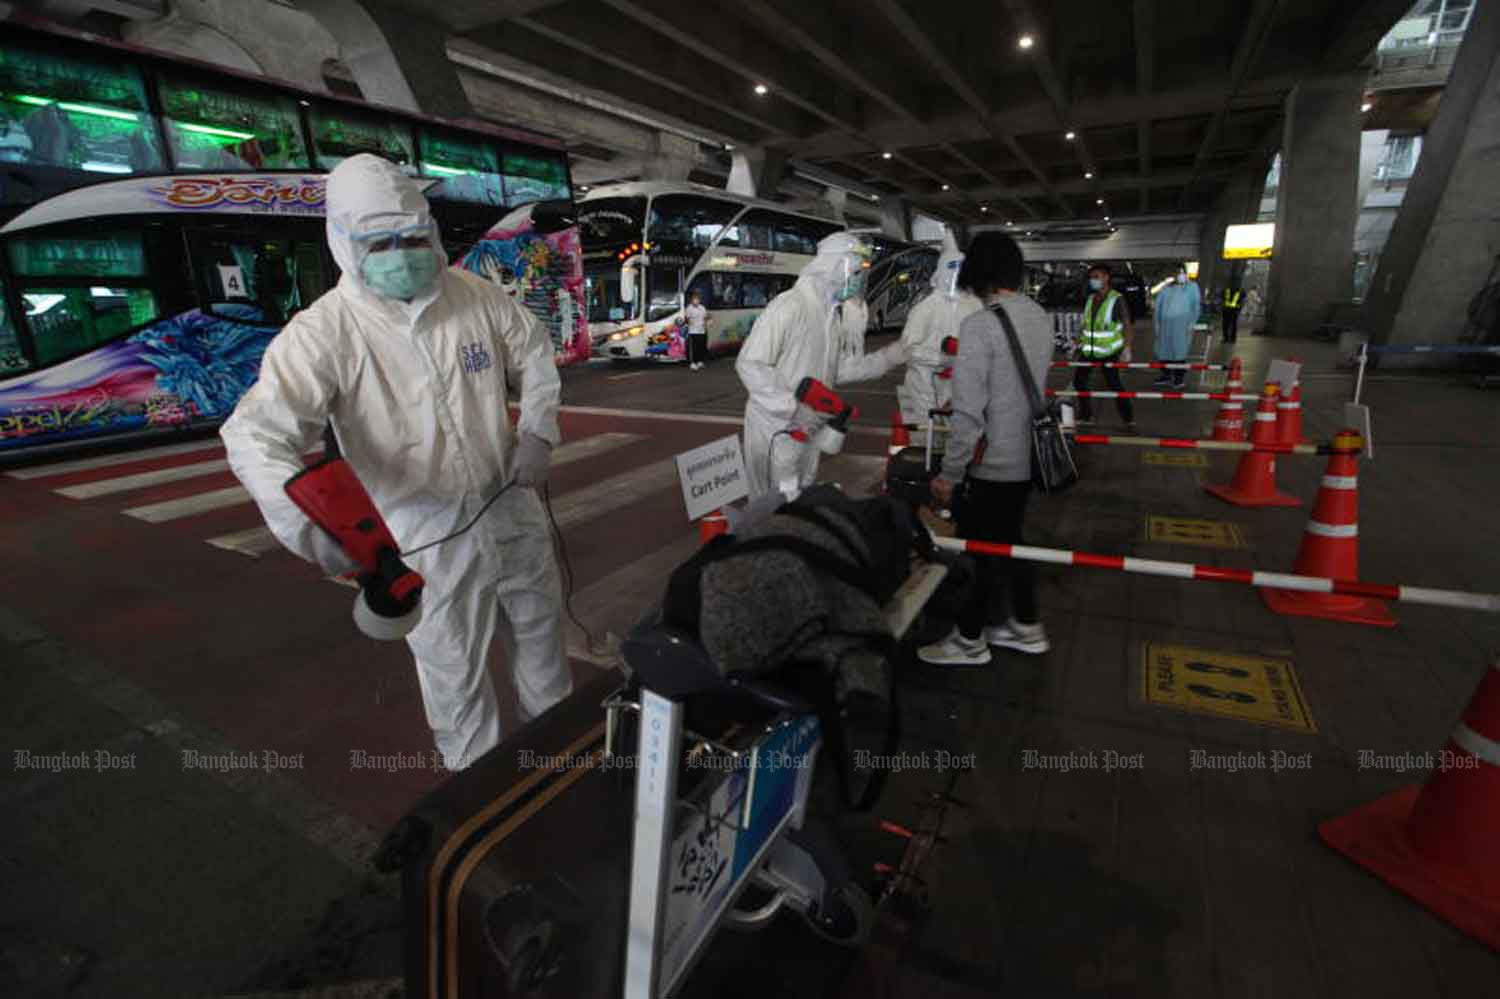 Disease control officials greet returnees at Suvarnabhumi airport in Samut Prakan province. (File photo: Arnun Chonmahatrakool)